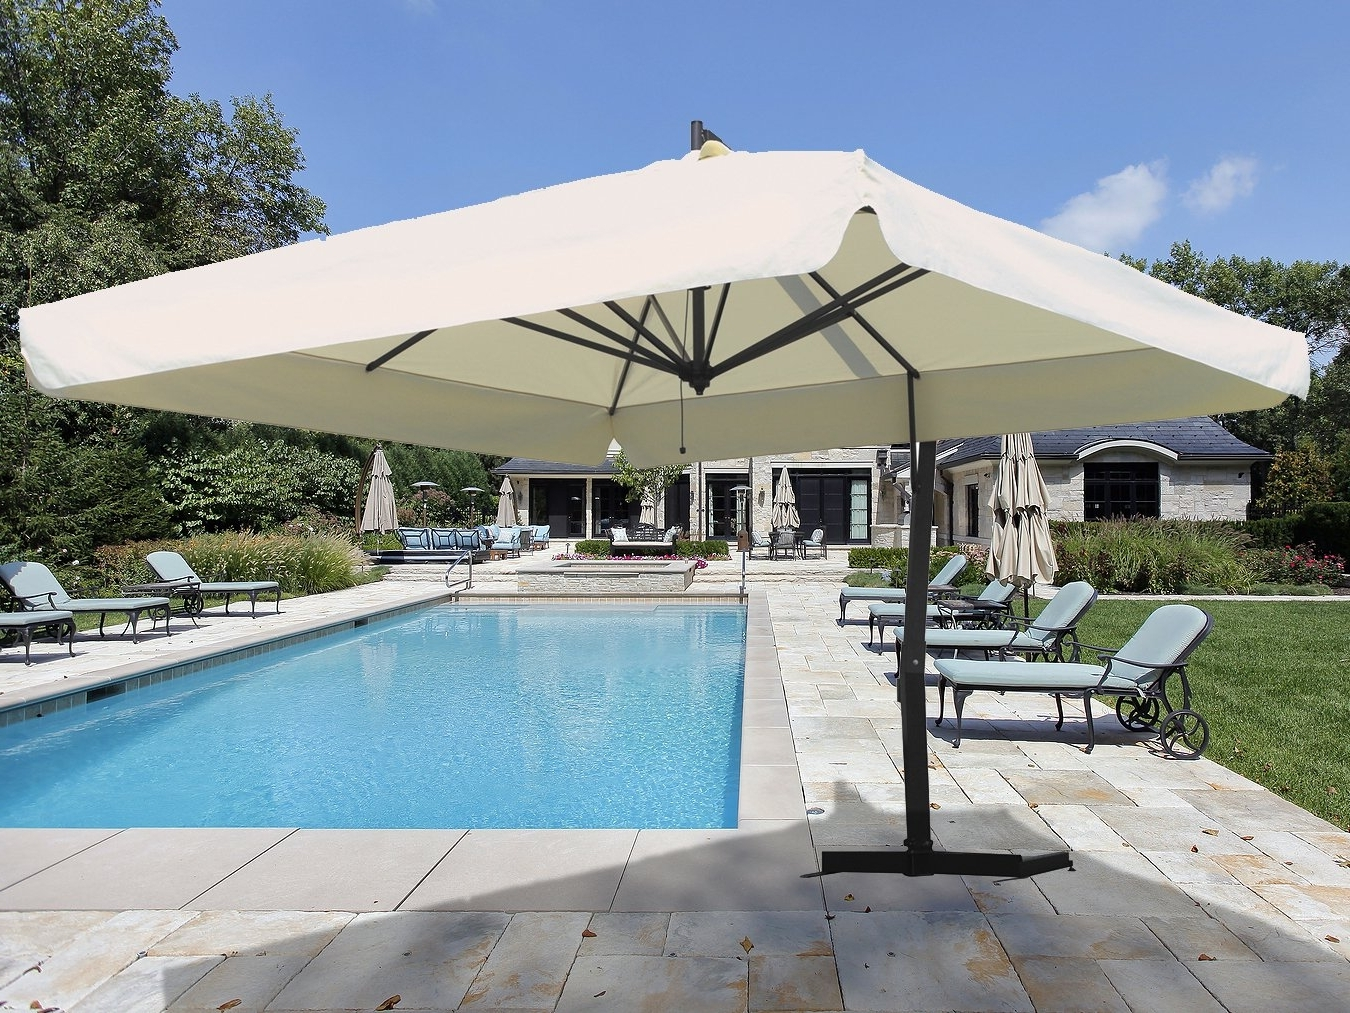 Preferred Patio & Outdoor: Amazing Kmart Ivory Oversized Patio Umbrella For Regarding Oversized Patio Umbrellas (View 20 of 20)